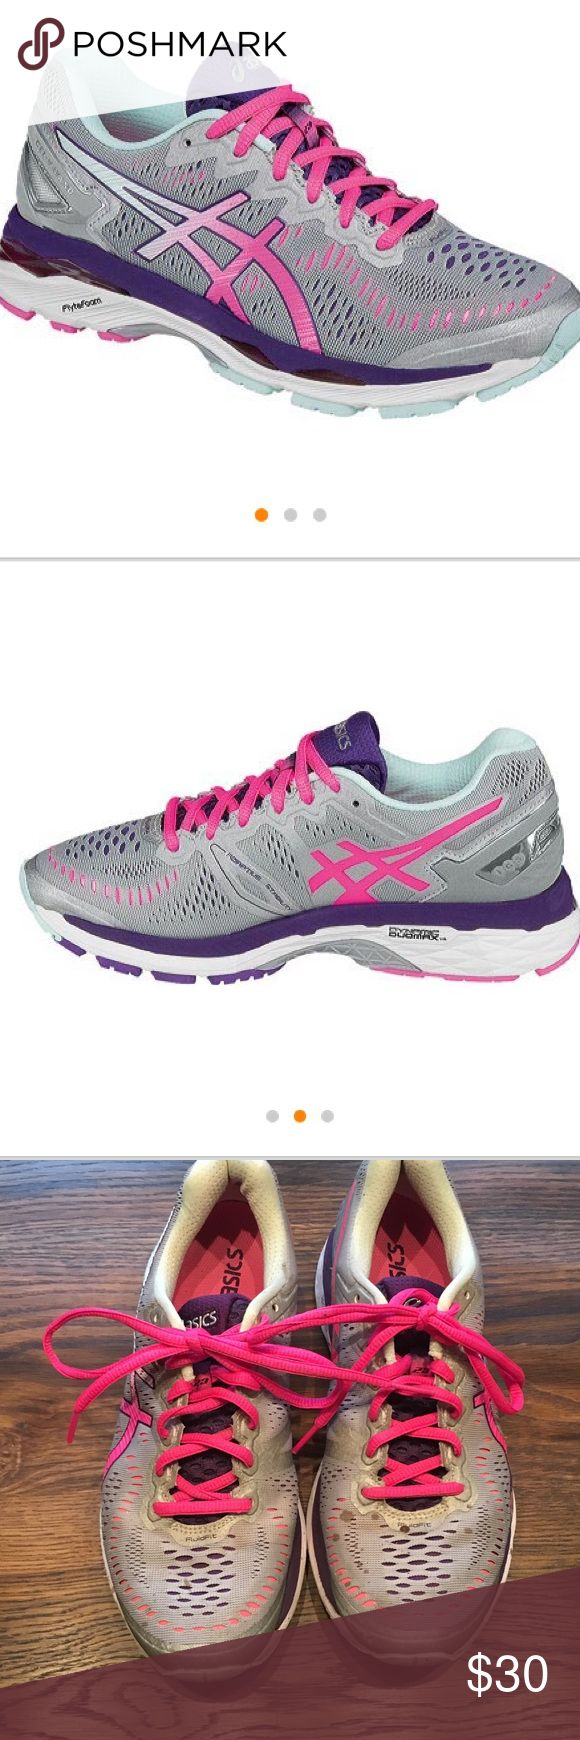 SALE! Women's ASICS Gel Kayano 8 Just purchased last year. Did get a couple of small paint drops on them. Asics Shoes Sneakers